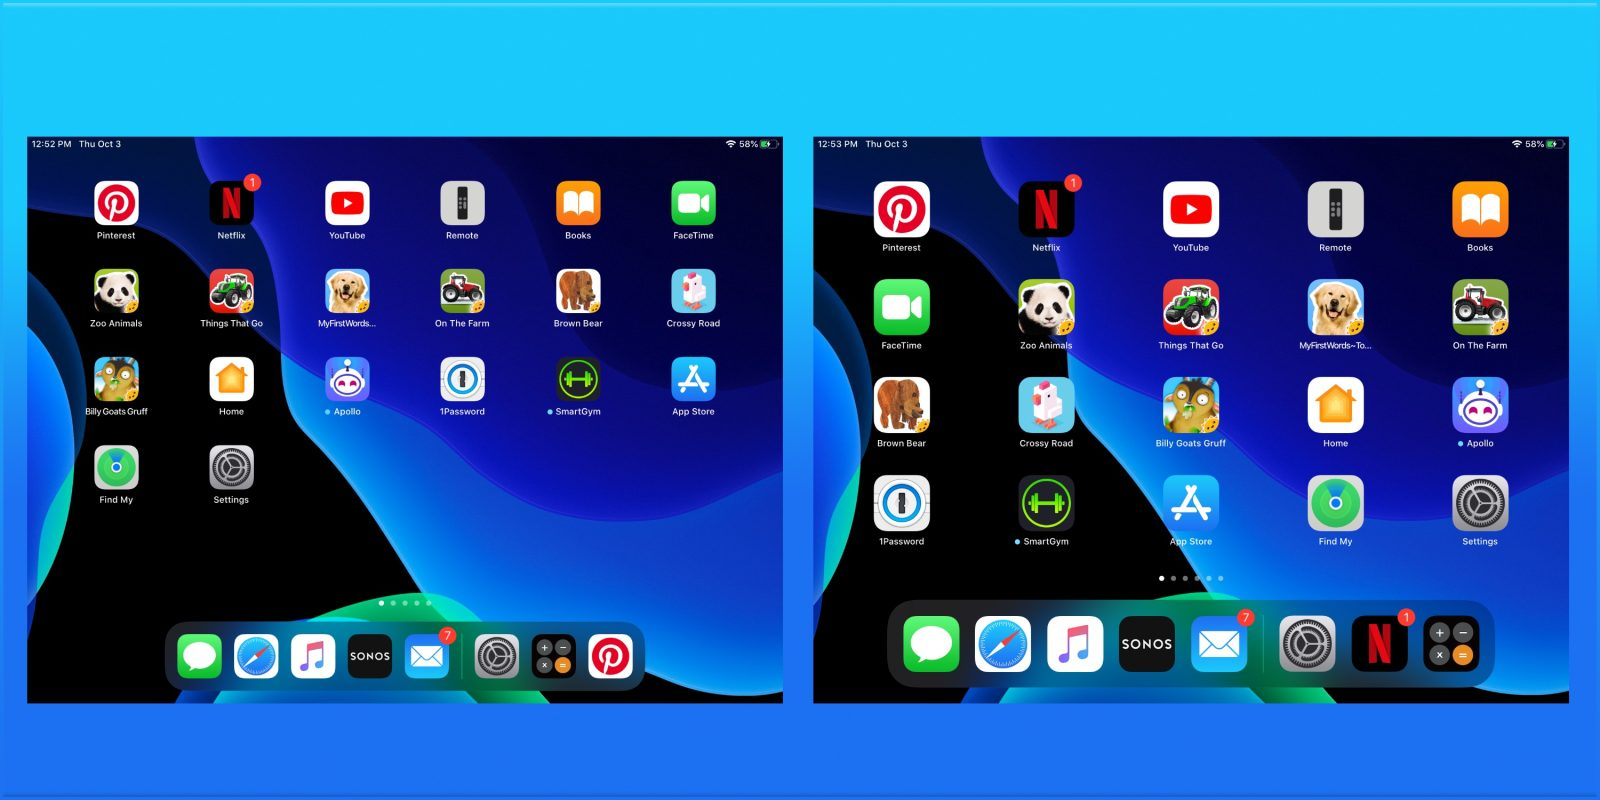 iPadOS 13: How to make iPad app icons and text bigger